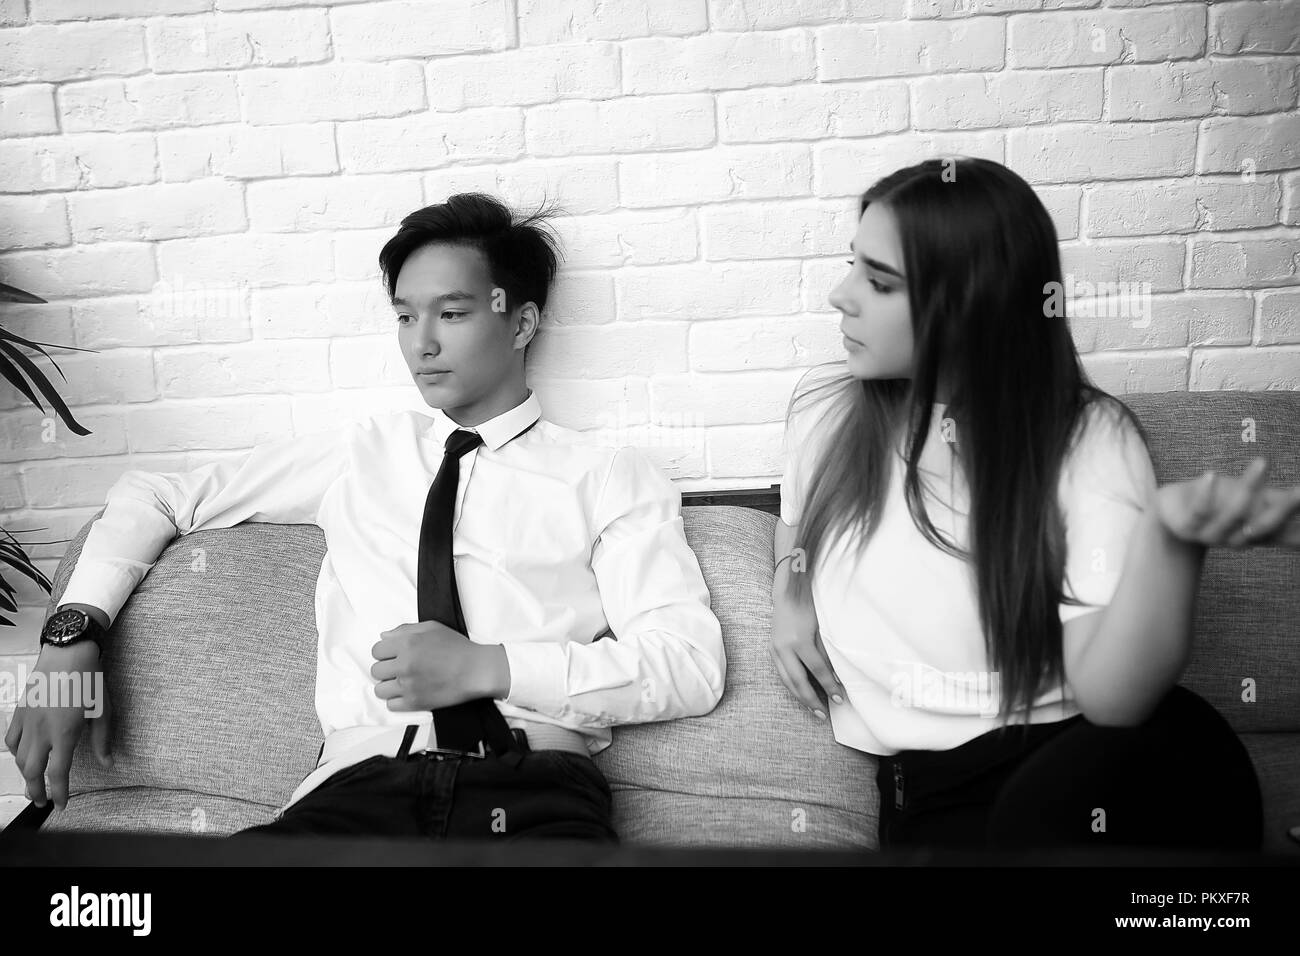 A pair of young people talking - Stock Image